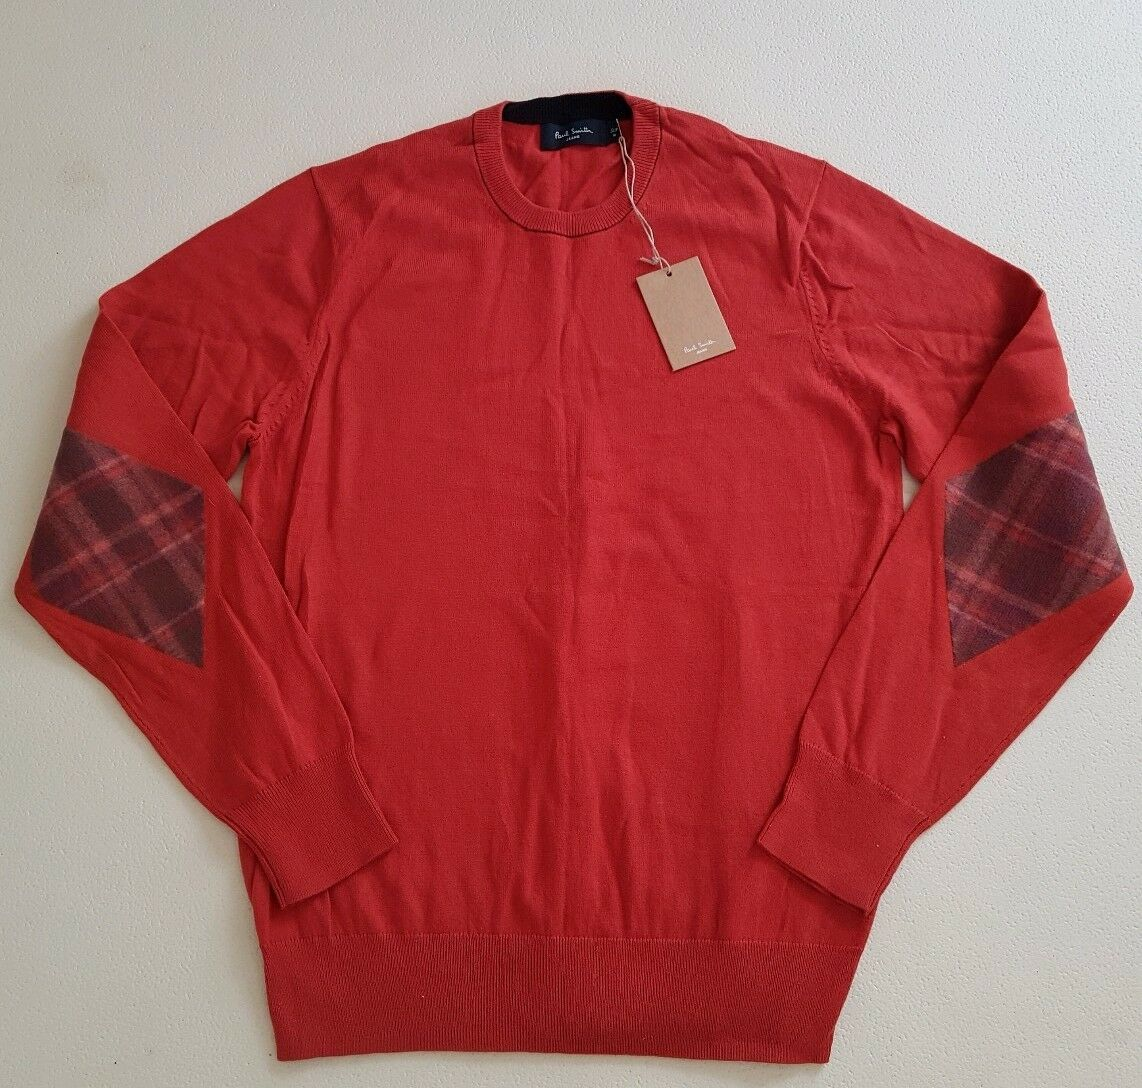 PAUL SMITH JUMPER SWEATER MENS orange SIZE M (40) TARTAN NEW WITH TAGS RRP